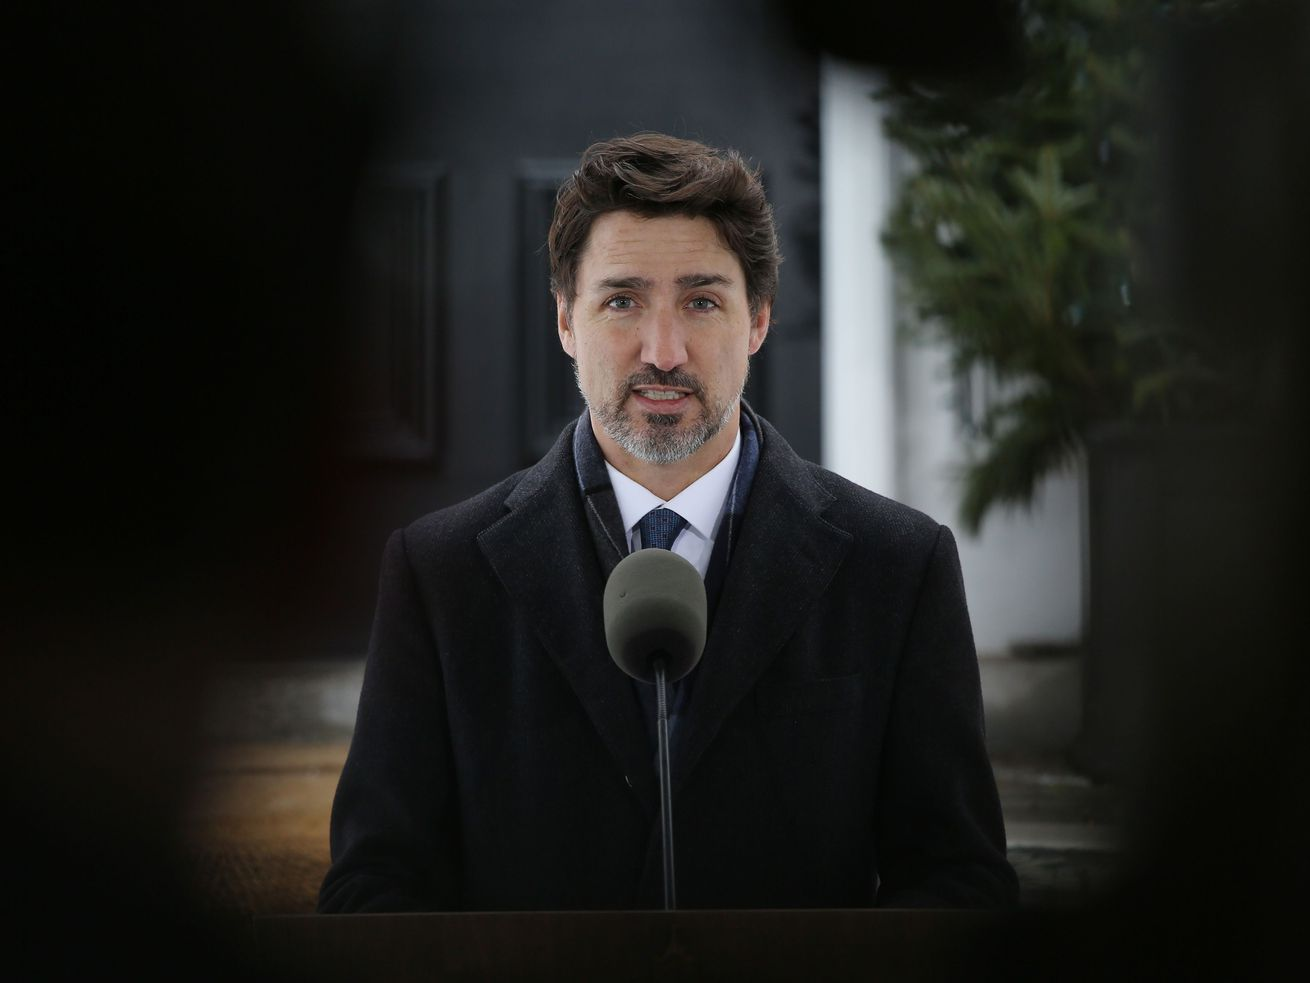 Trudeau, in a black overcoat and blue tie, speaks into a microphone in front of his home, his body framed in the photo by reporters.